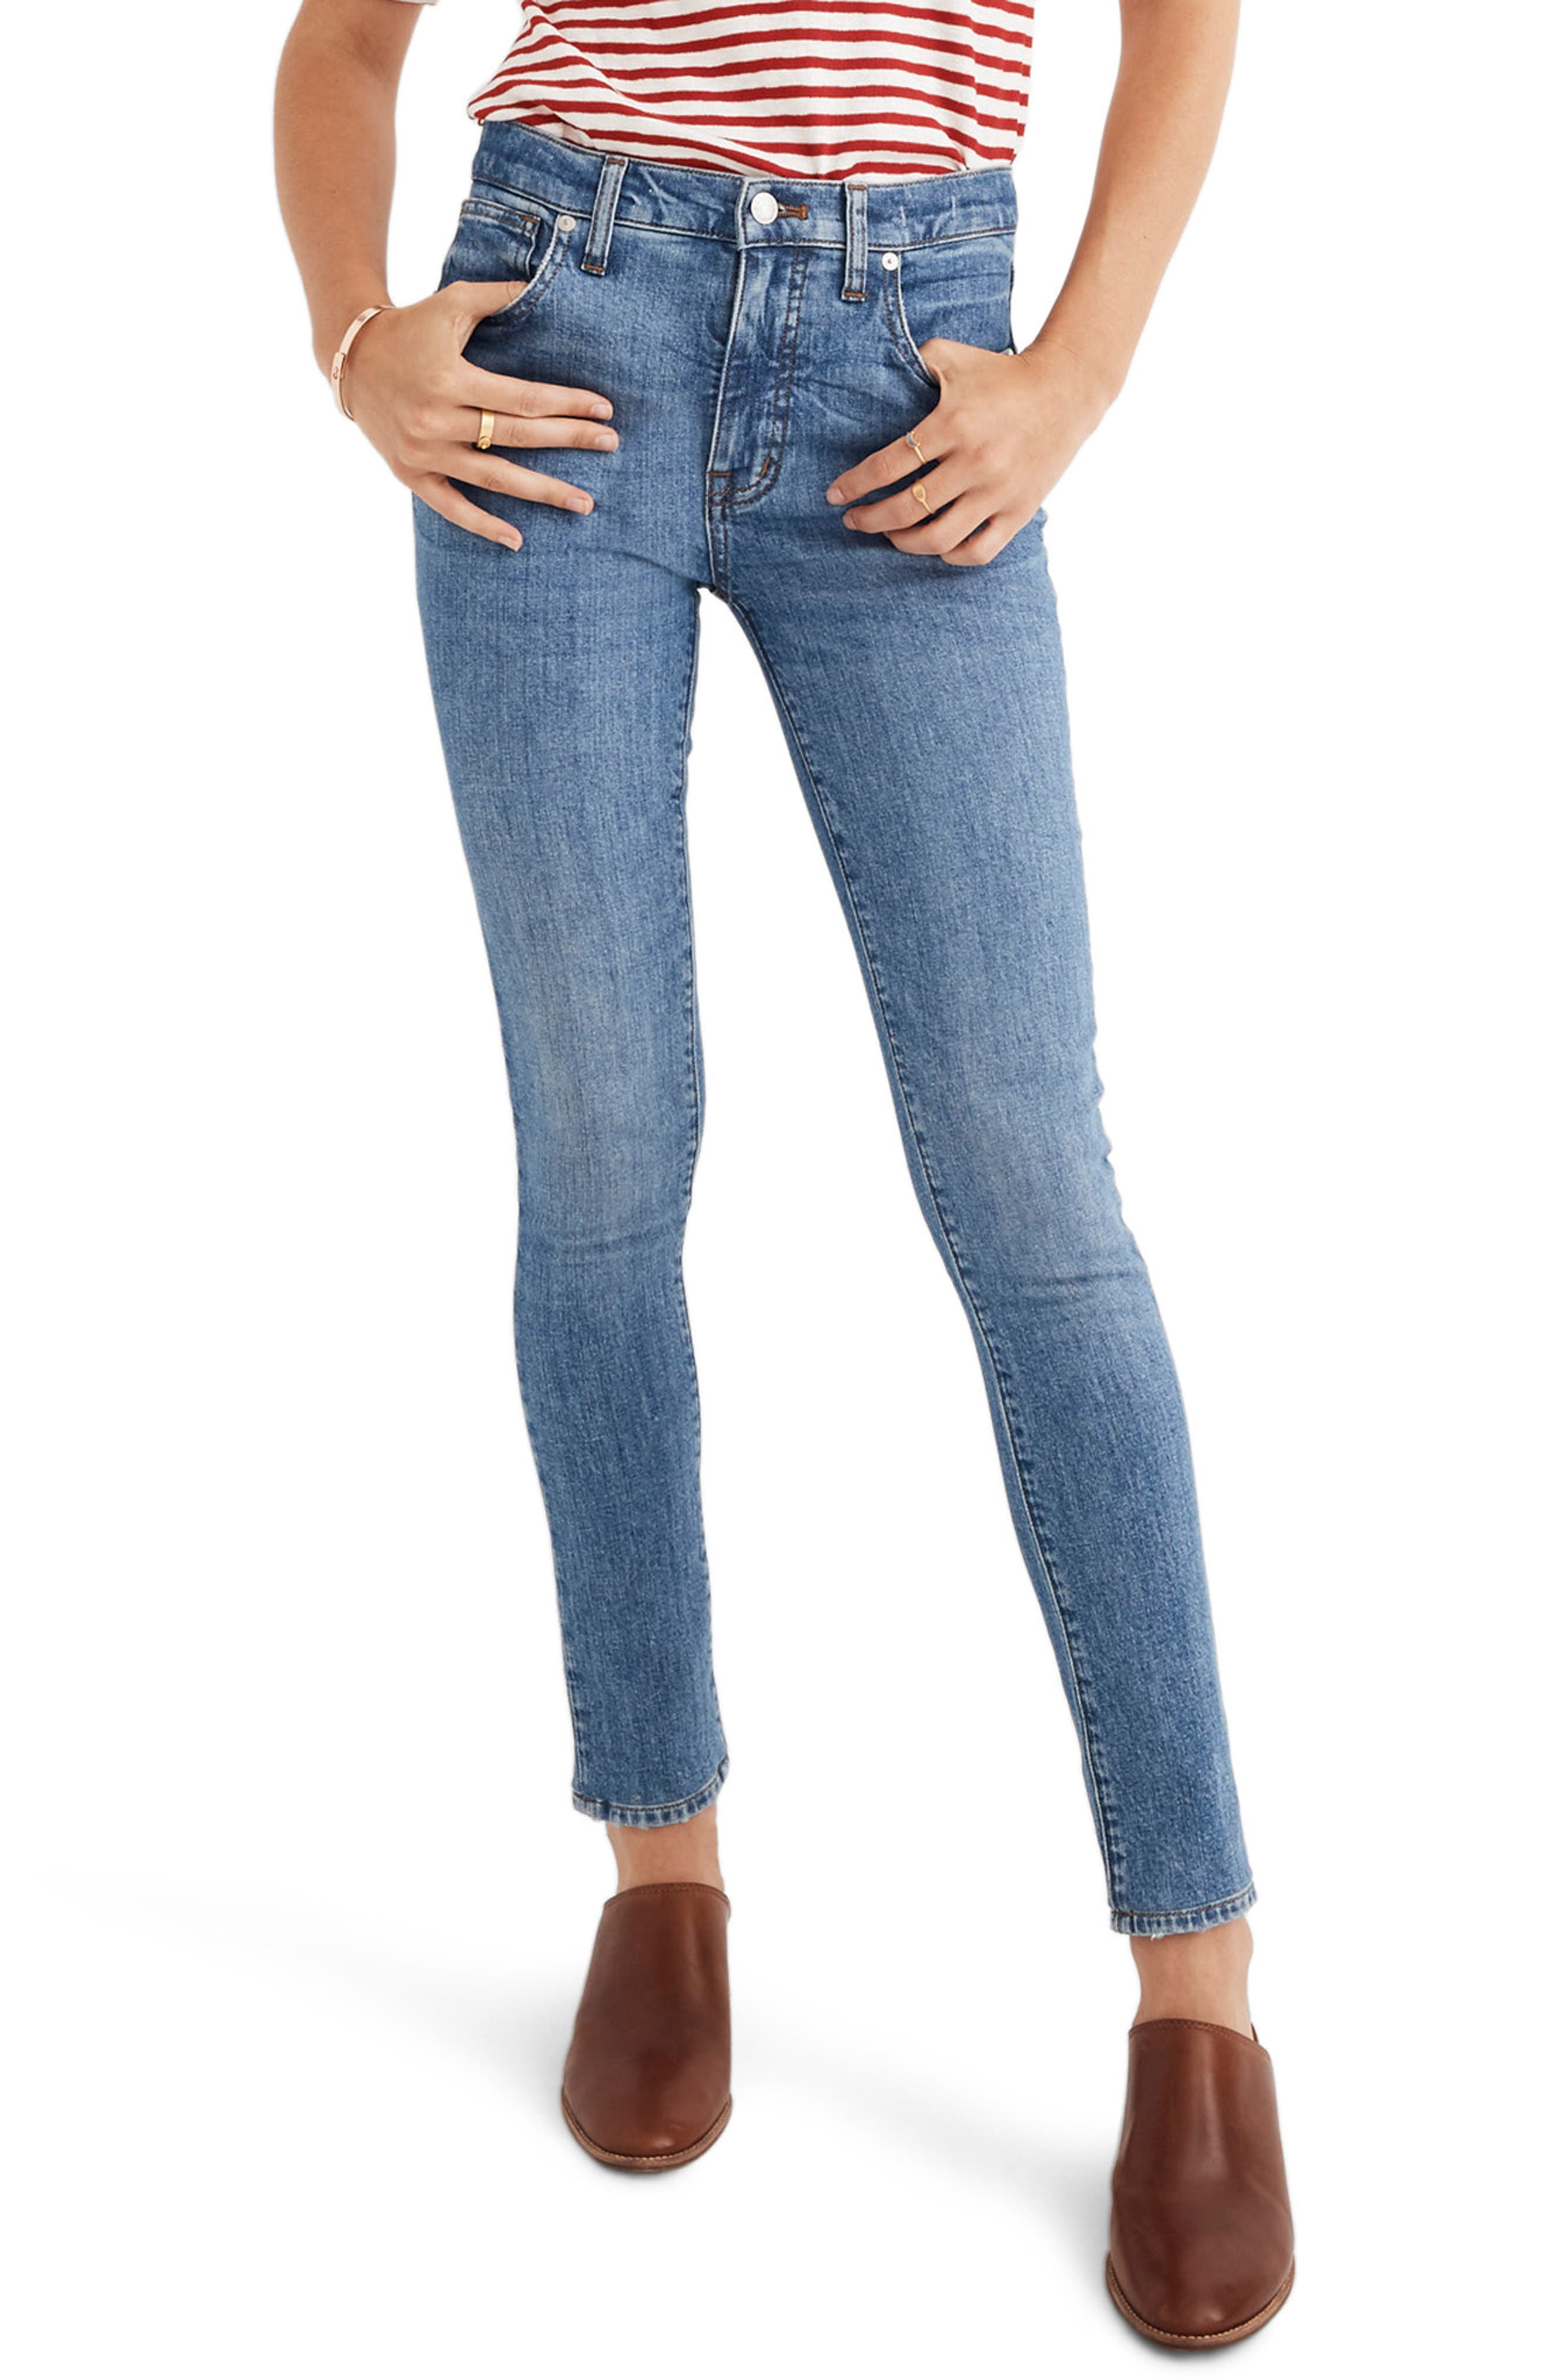 MADEWELL, 9-Inch High Waist Stretch Skinny Jeans, Main thumbnail 1, color, REGINA